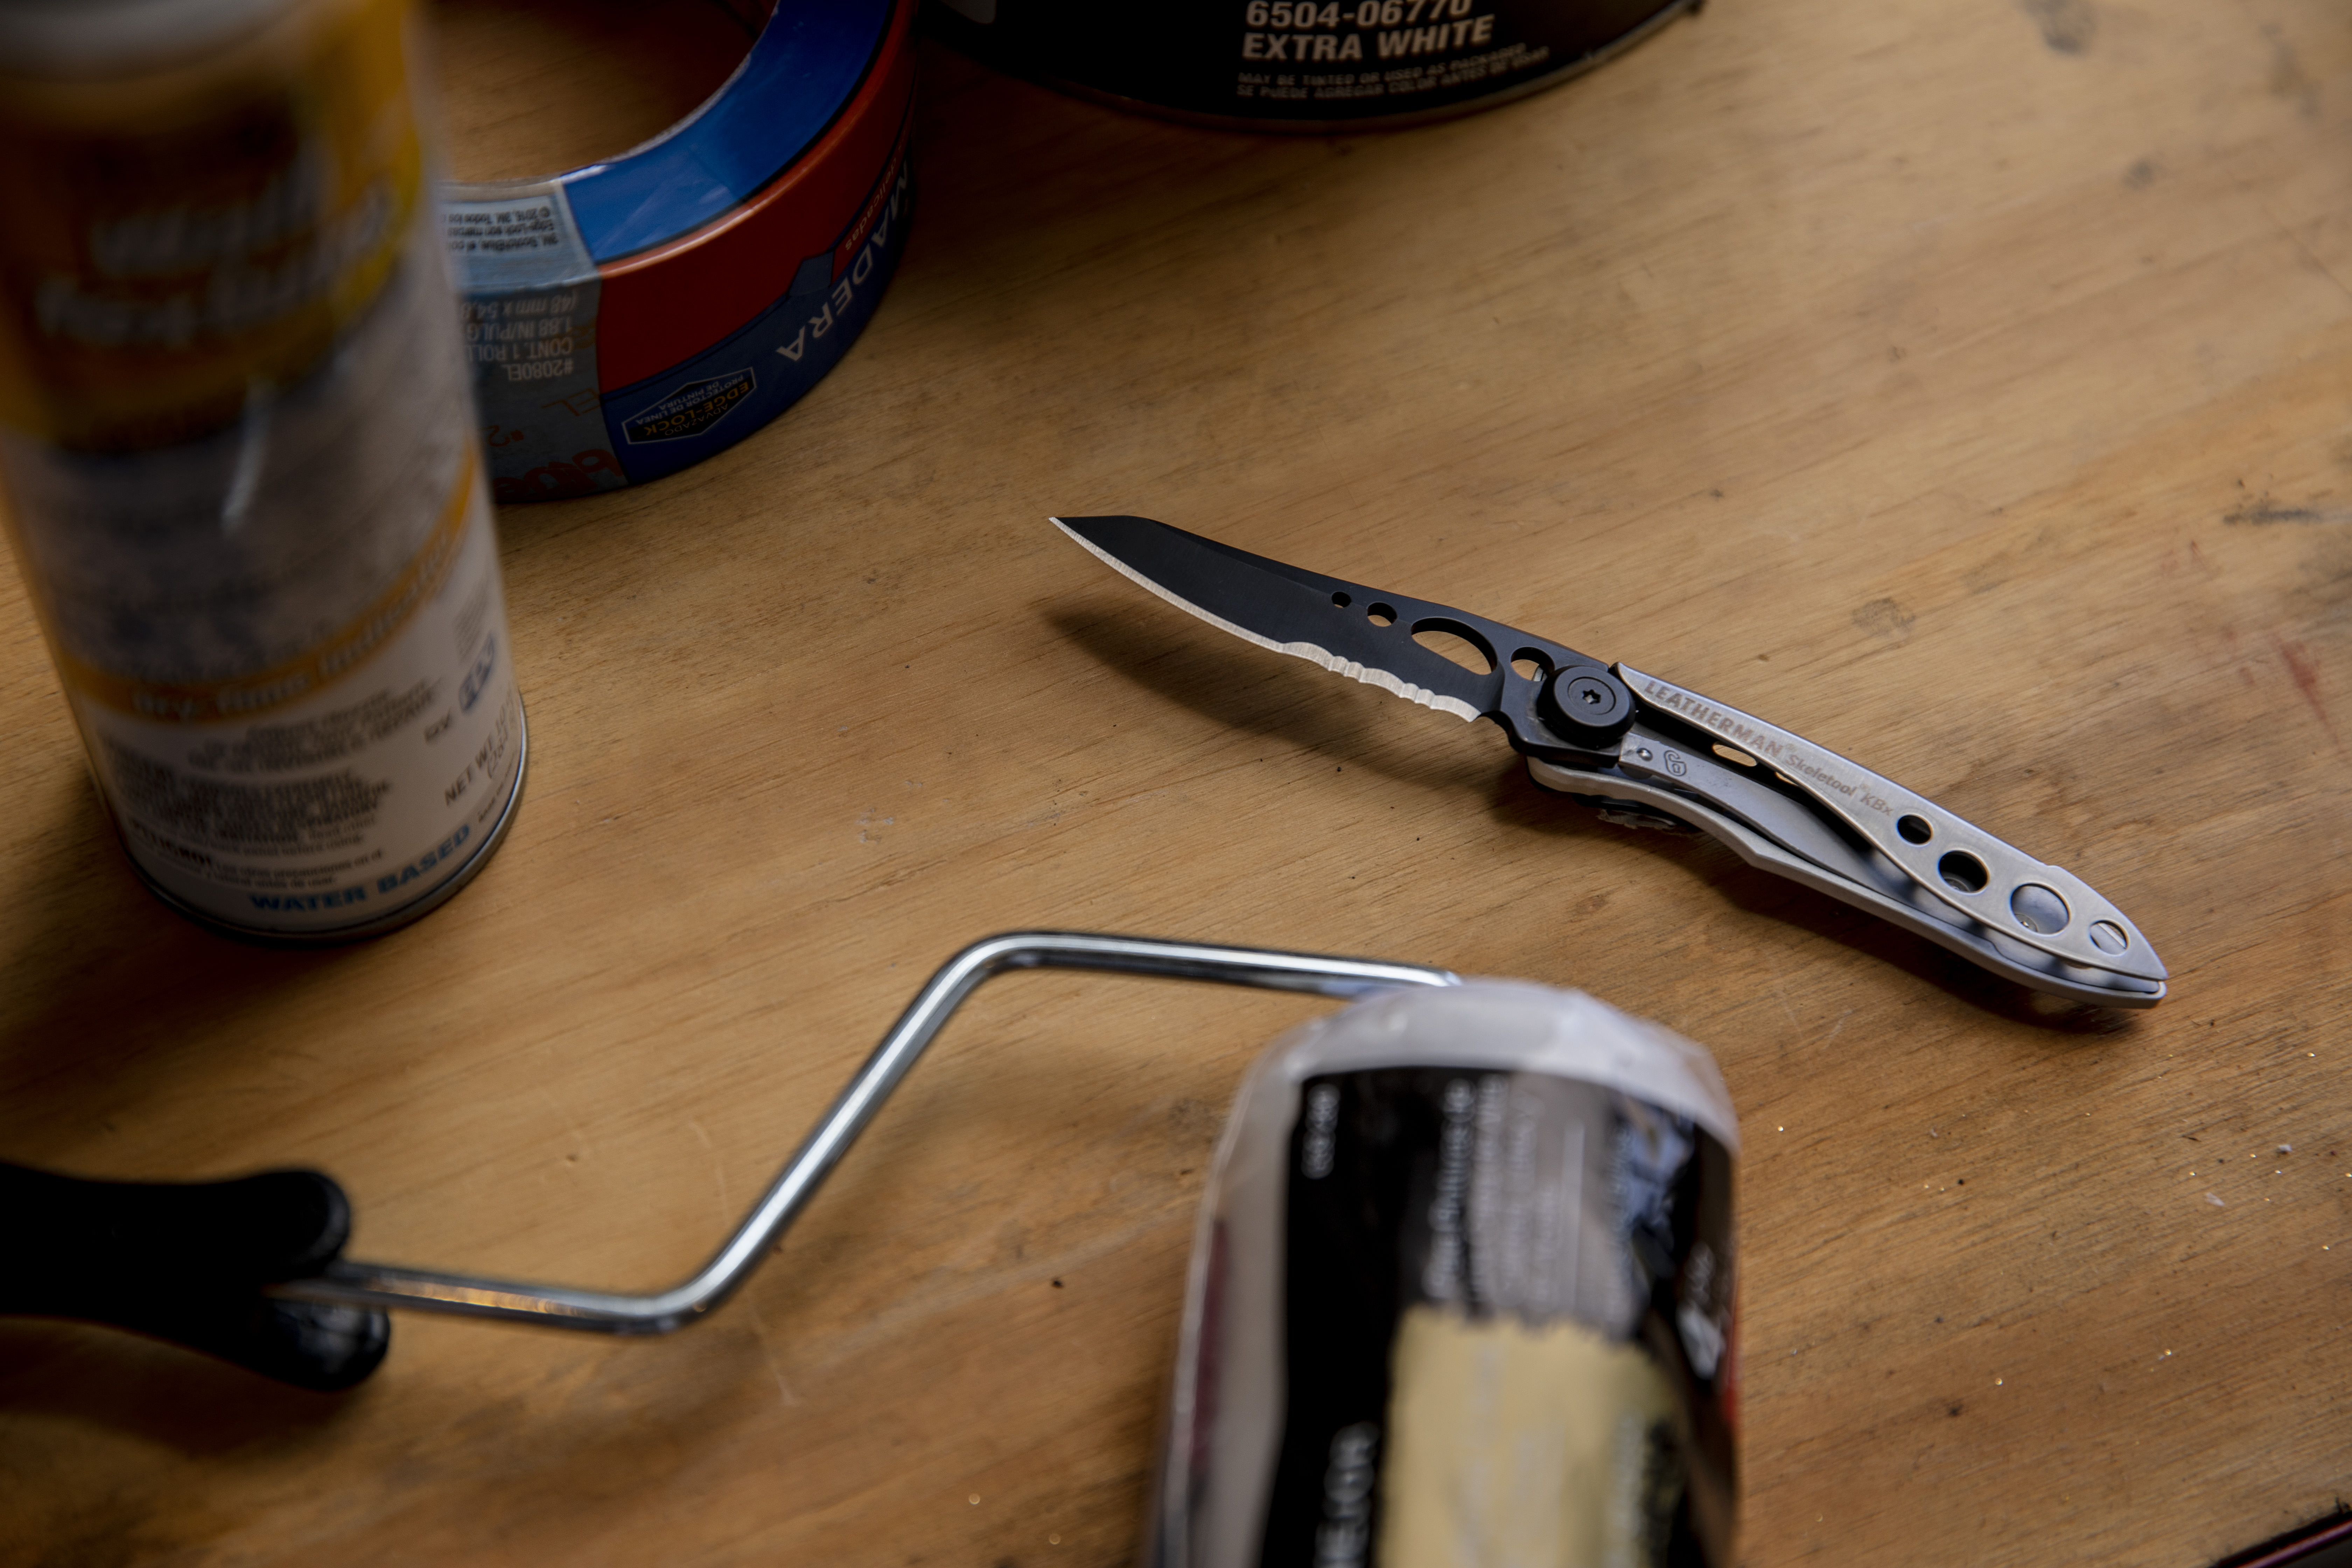 Black and Silver Skeletool KBX with open knife blade on wooden table